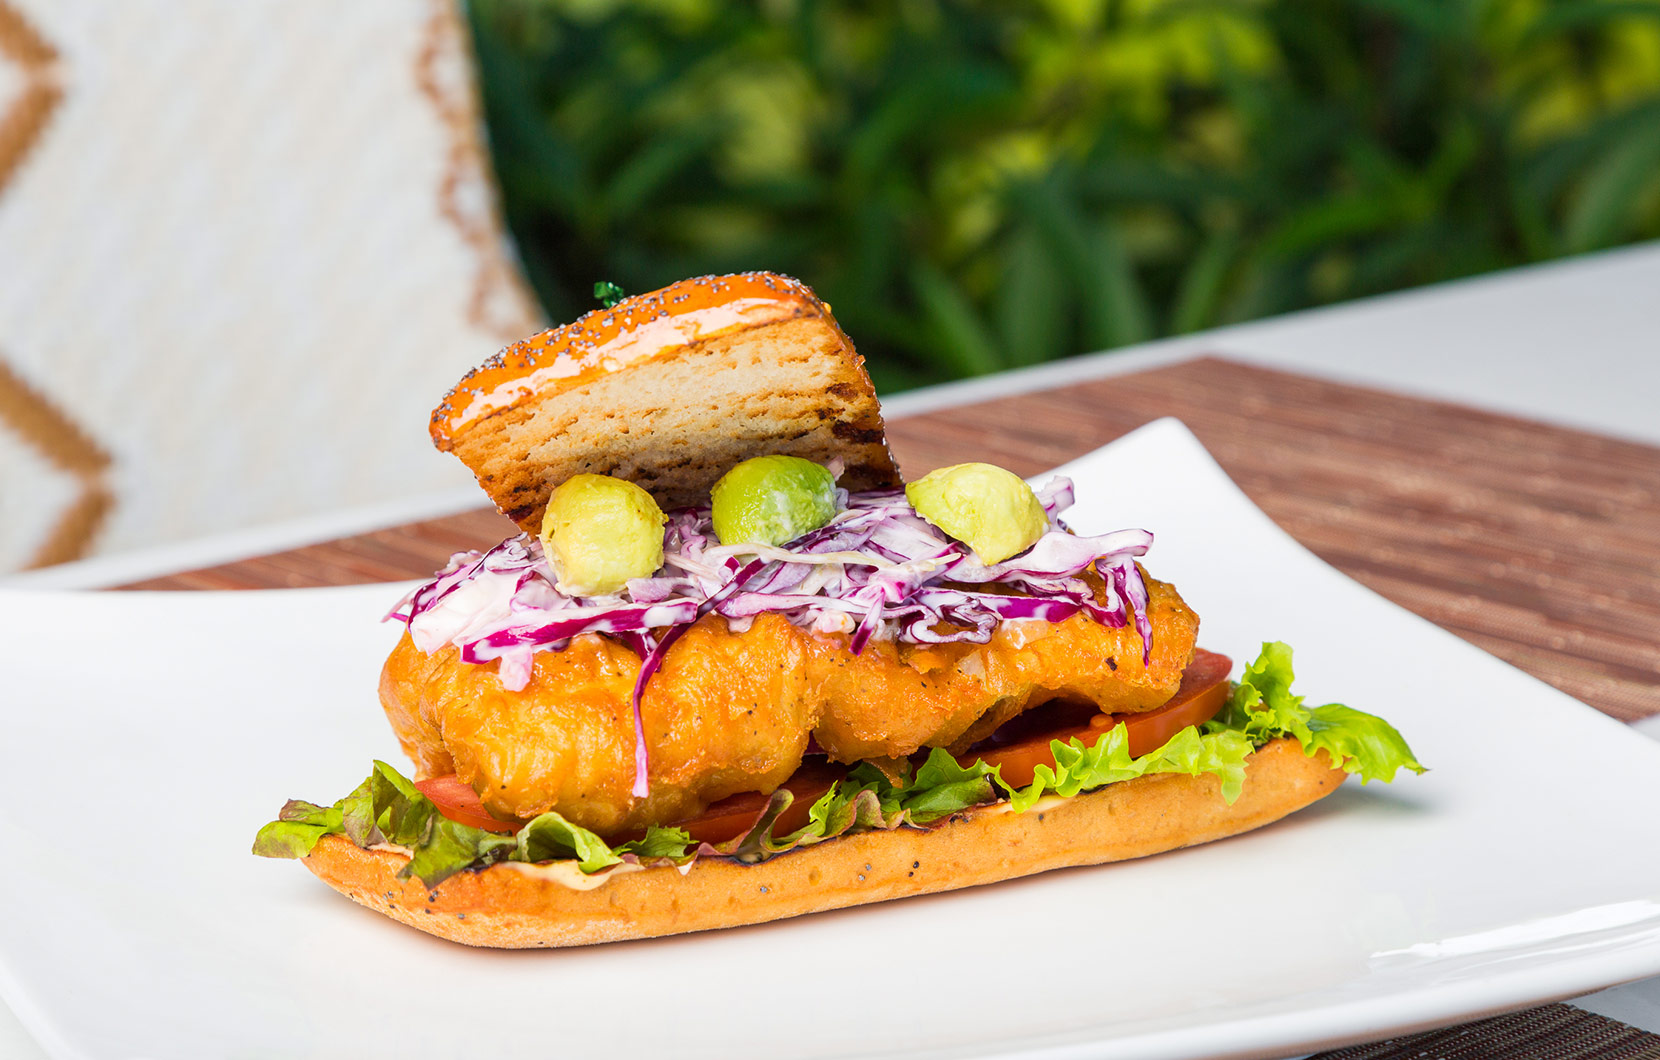 A flaky fish fillet topped with avocado pearls gives Chef Felipe's burger its character.